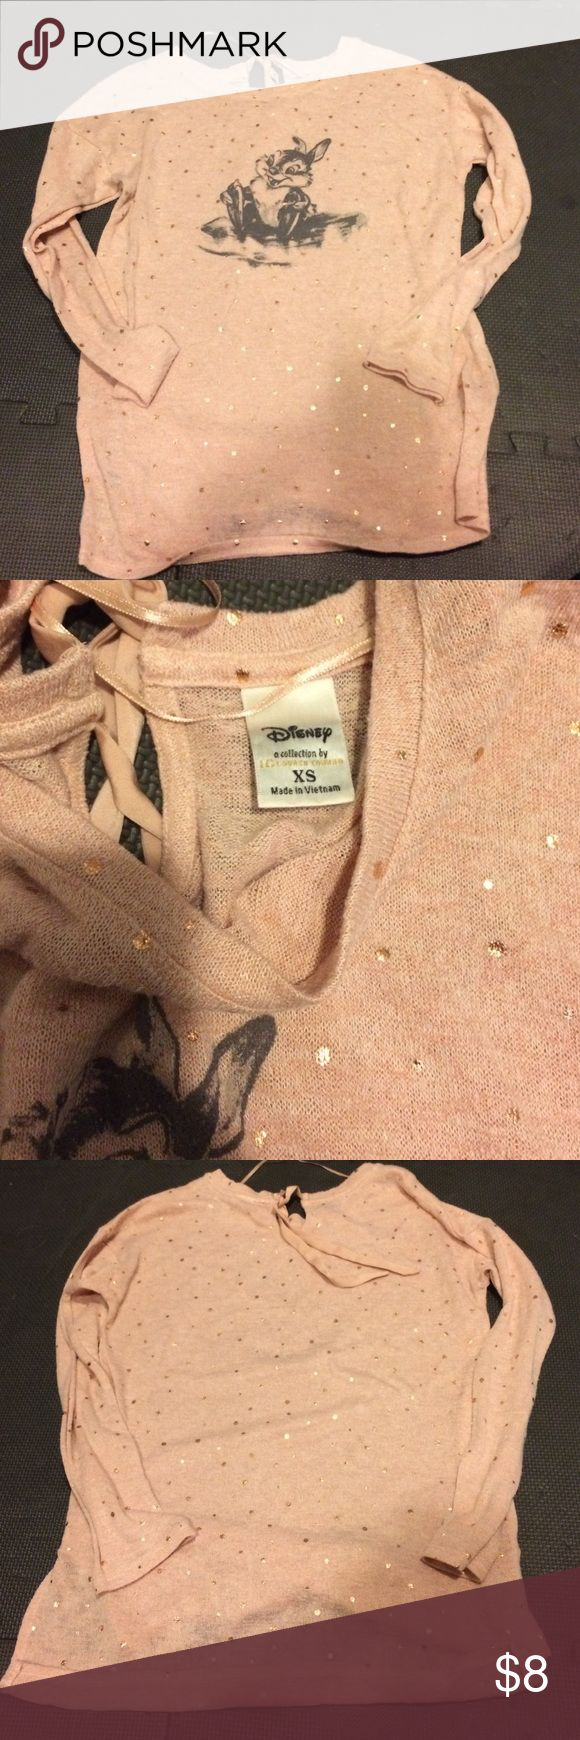 Pink Disney Sweater LC Lauren Conrad teamed up with Disney and created this adorable shirt! Light pink with gold pola dots and the lovable thumper from Disneys Bambi movie in grey. Perfect to wear for that Disney trip or with a pair of leggings LC Lauren Conrad Sweaters